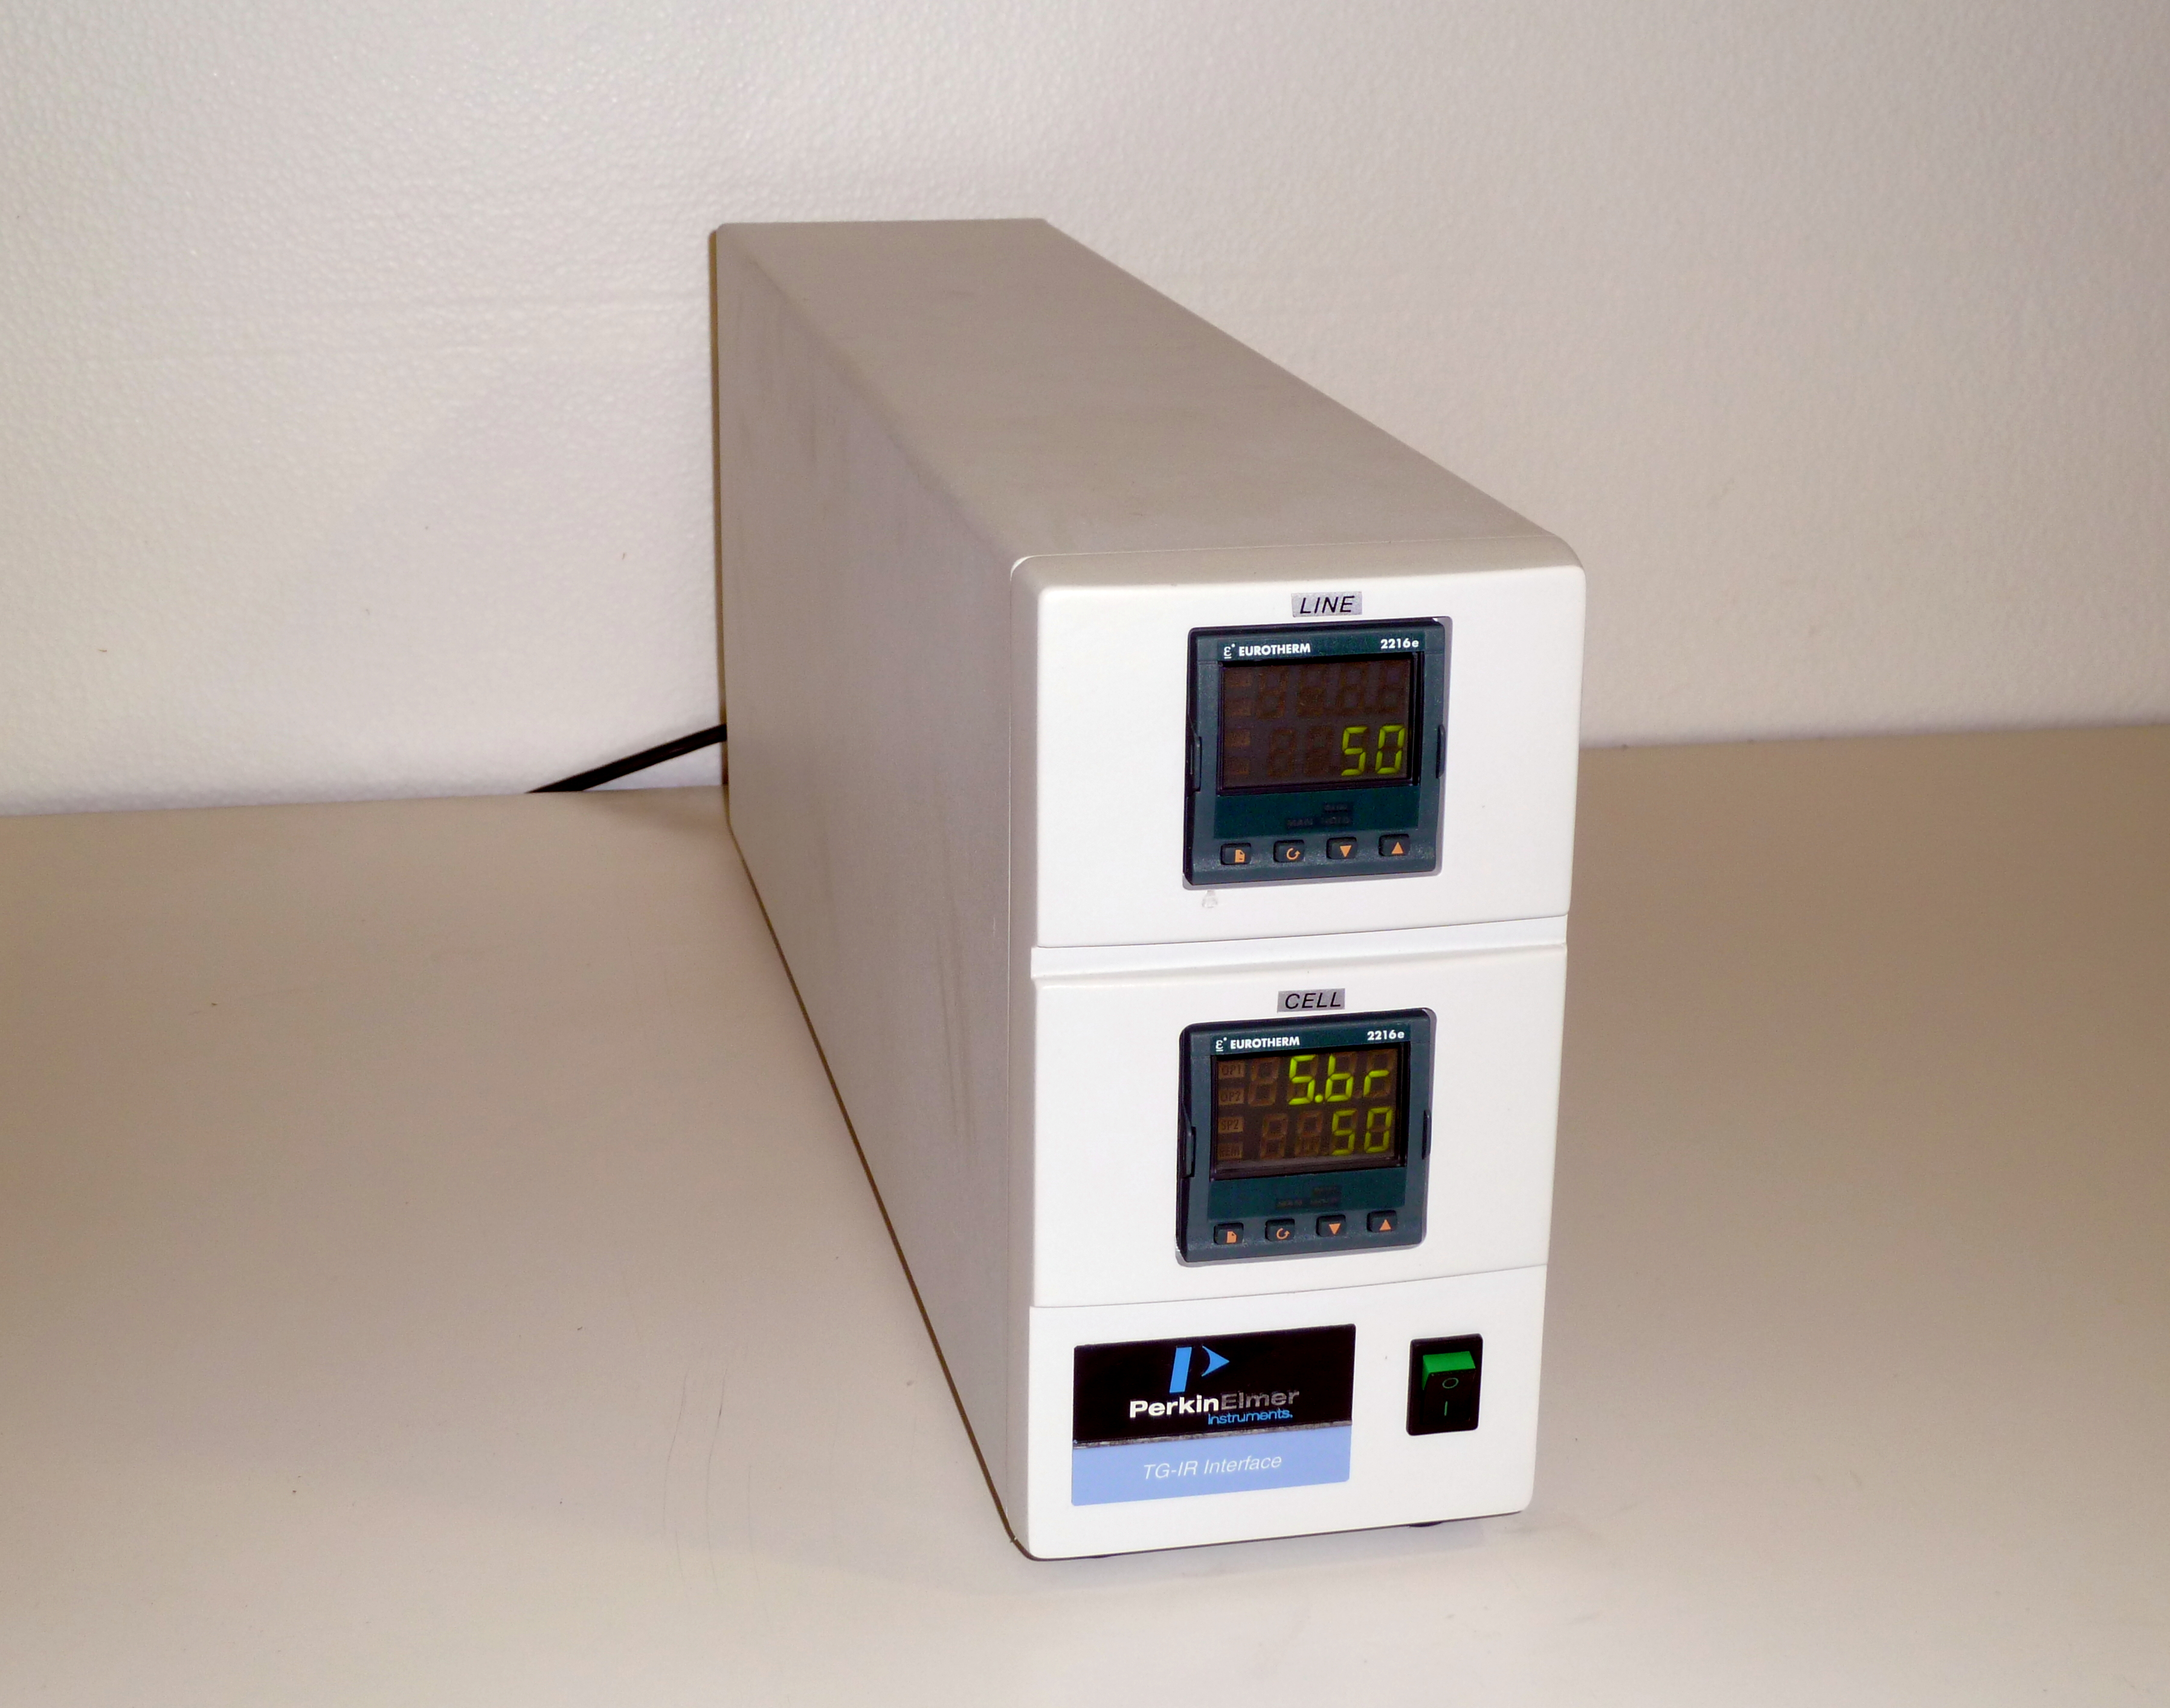 PERKIN ELMER TG-IR Interface